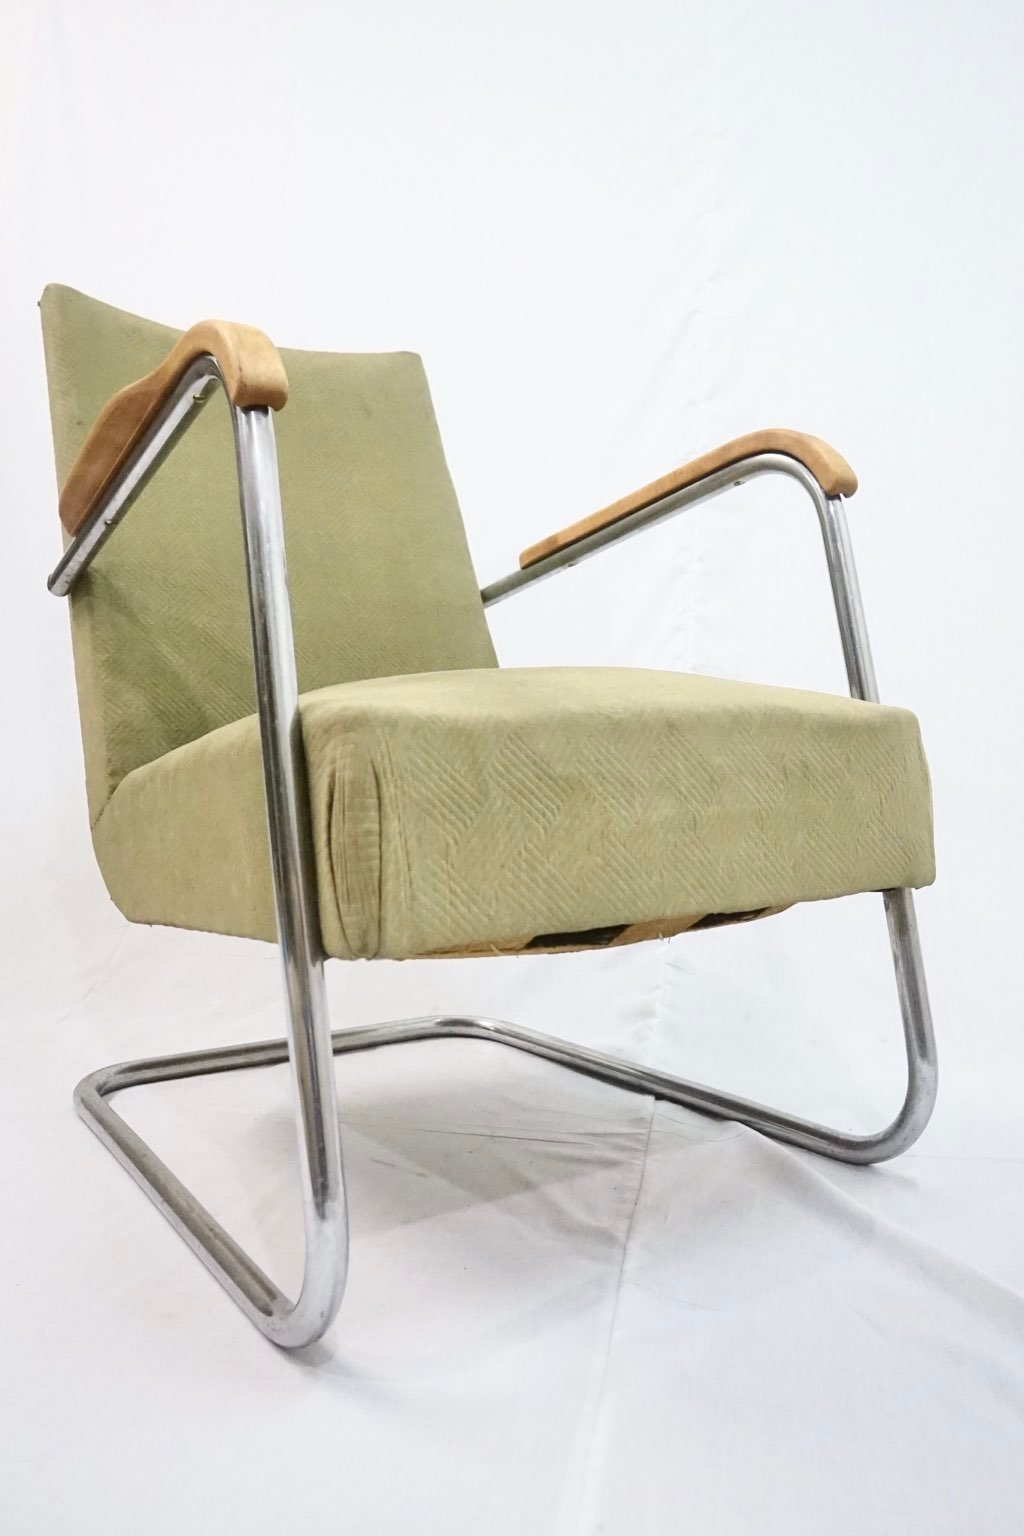 Rare steel tube easychair attributed Frits Schlegel for Fritz Hansen : Price upon request